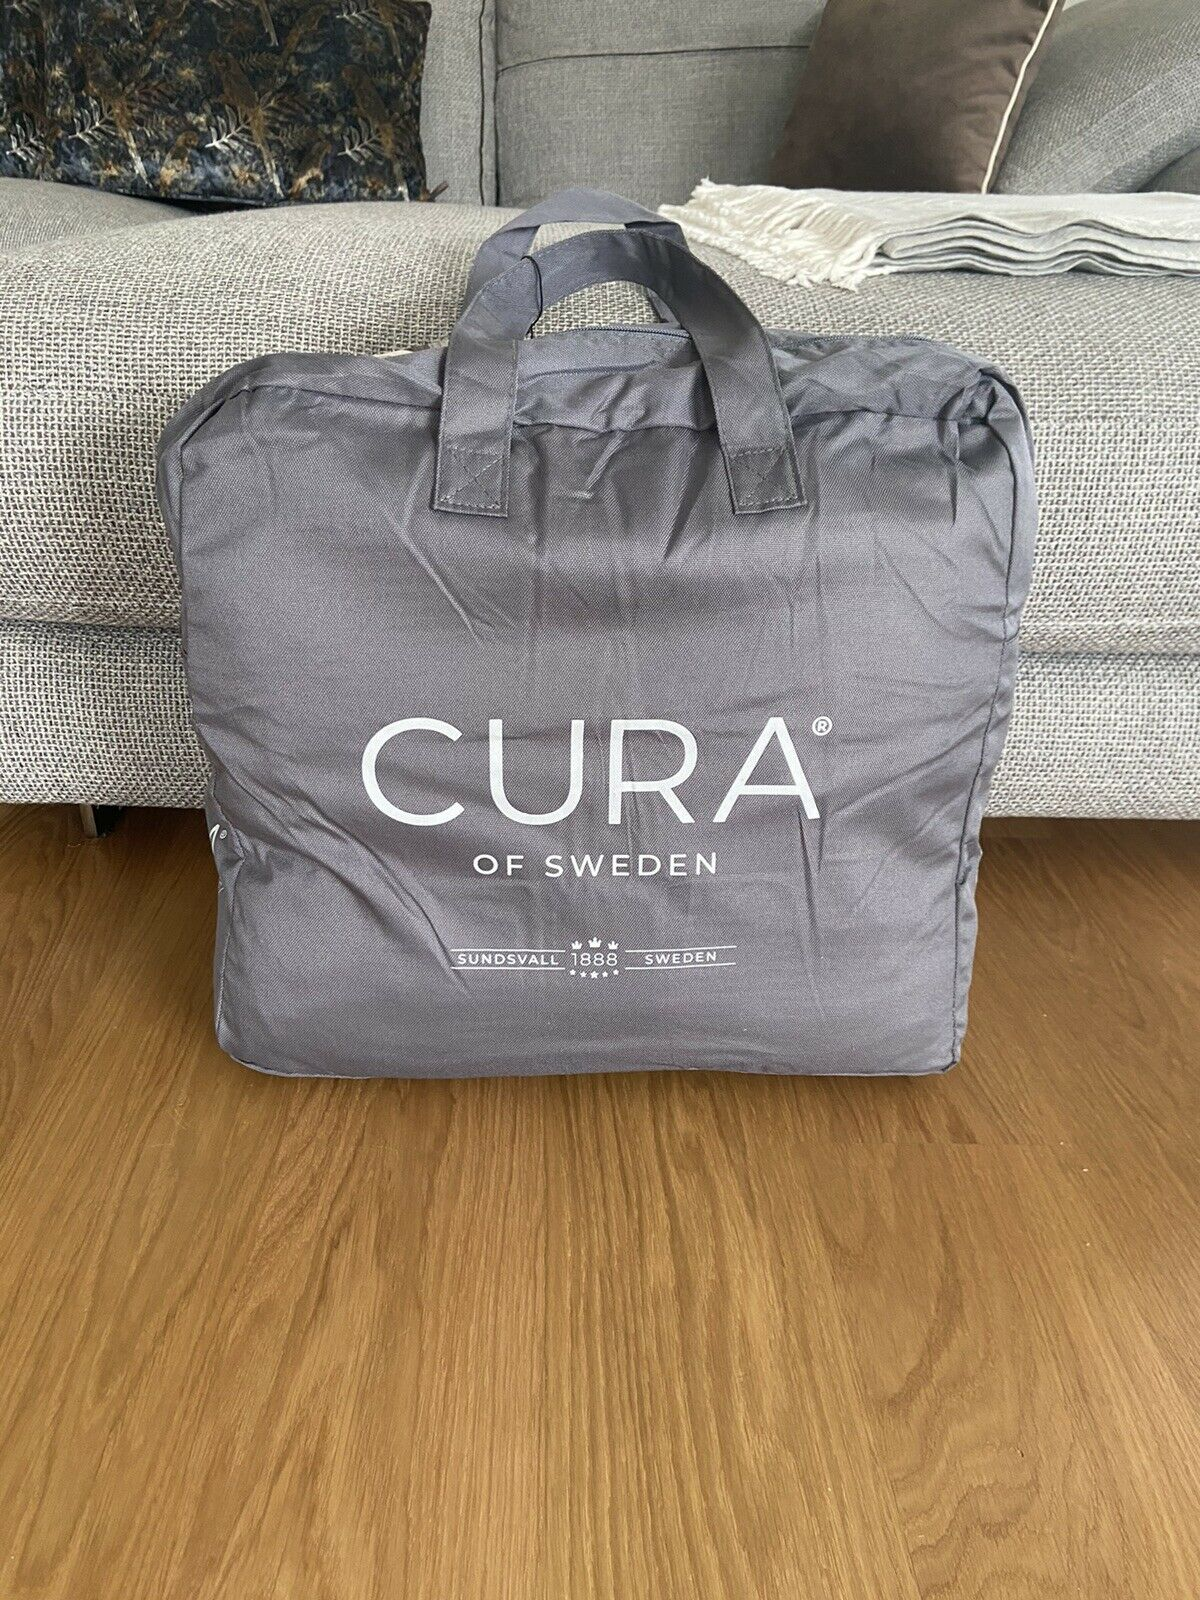 Cura Weight Blanket-Pearl Classic Queen - 200x220 - 12 KG-UNUSED!!!